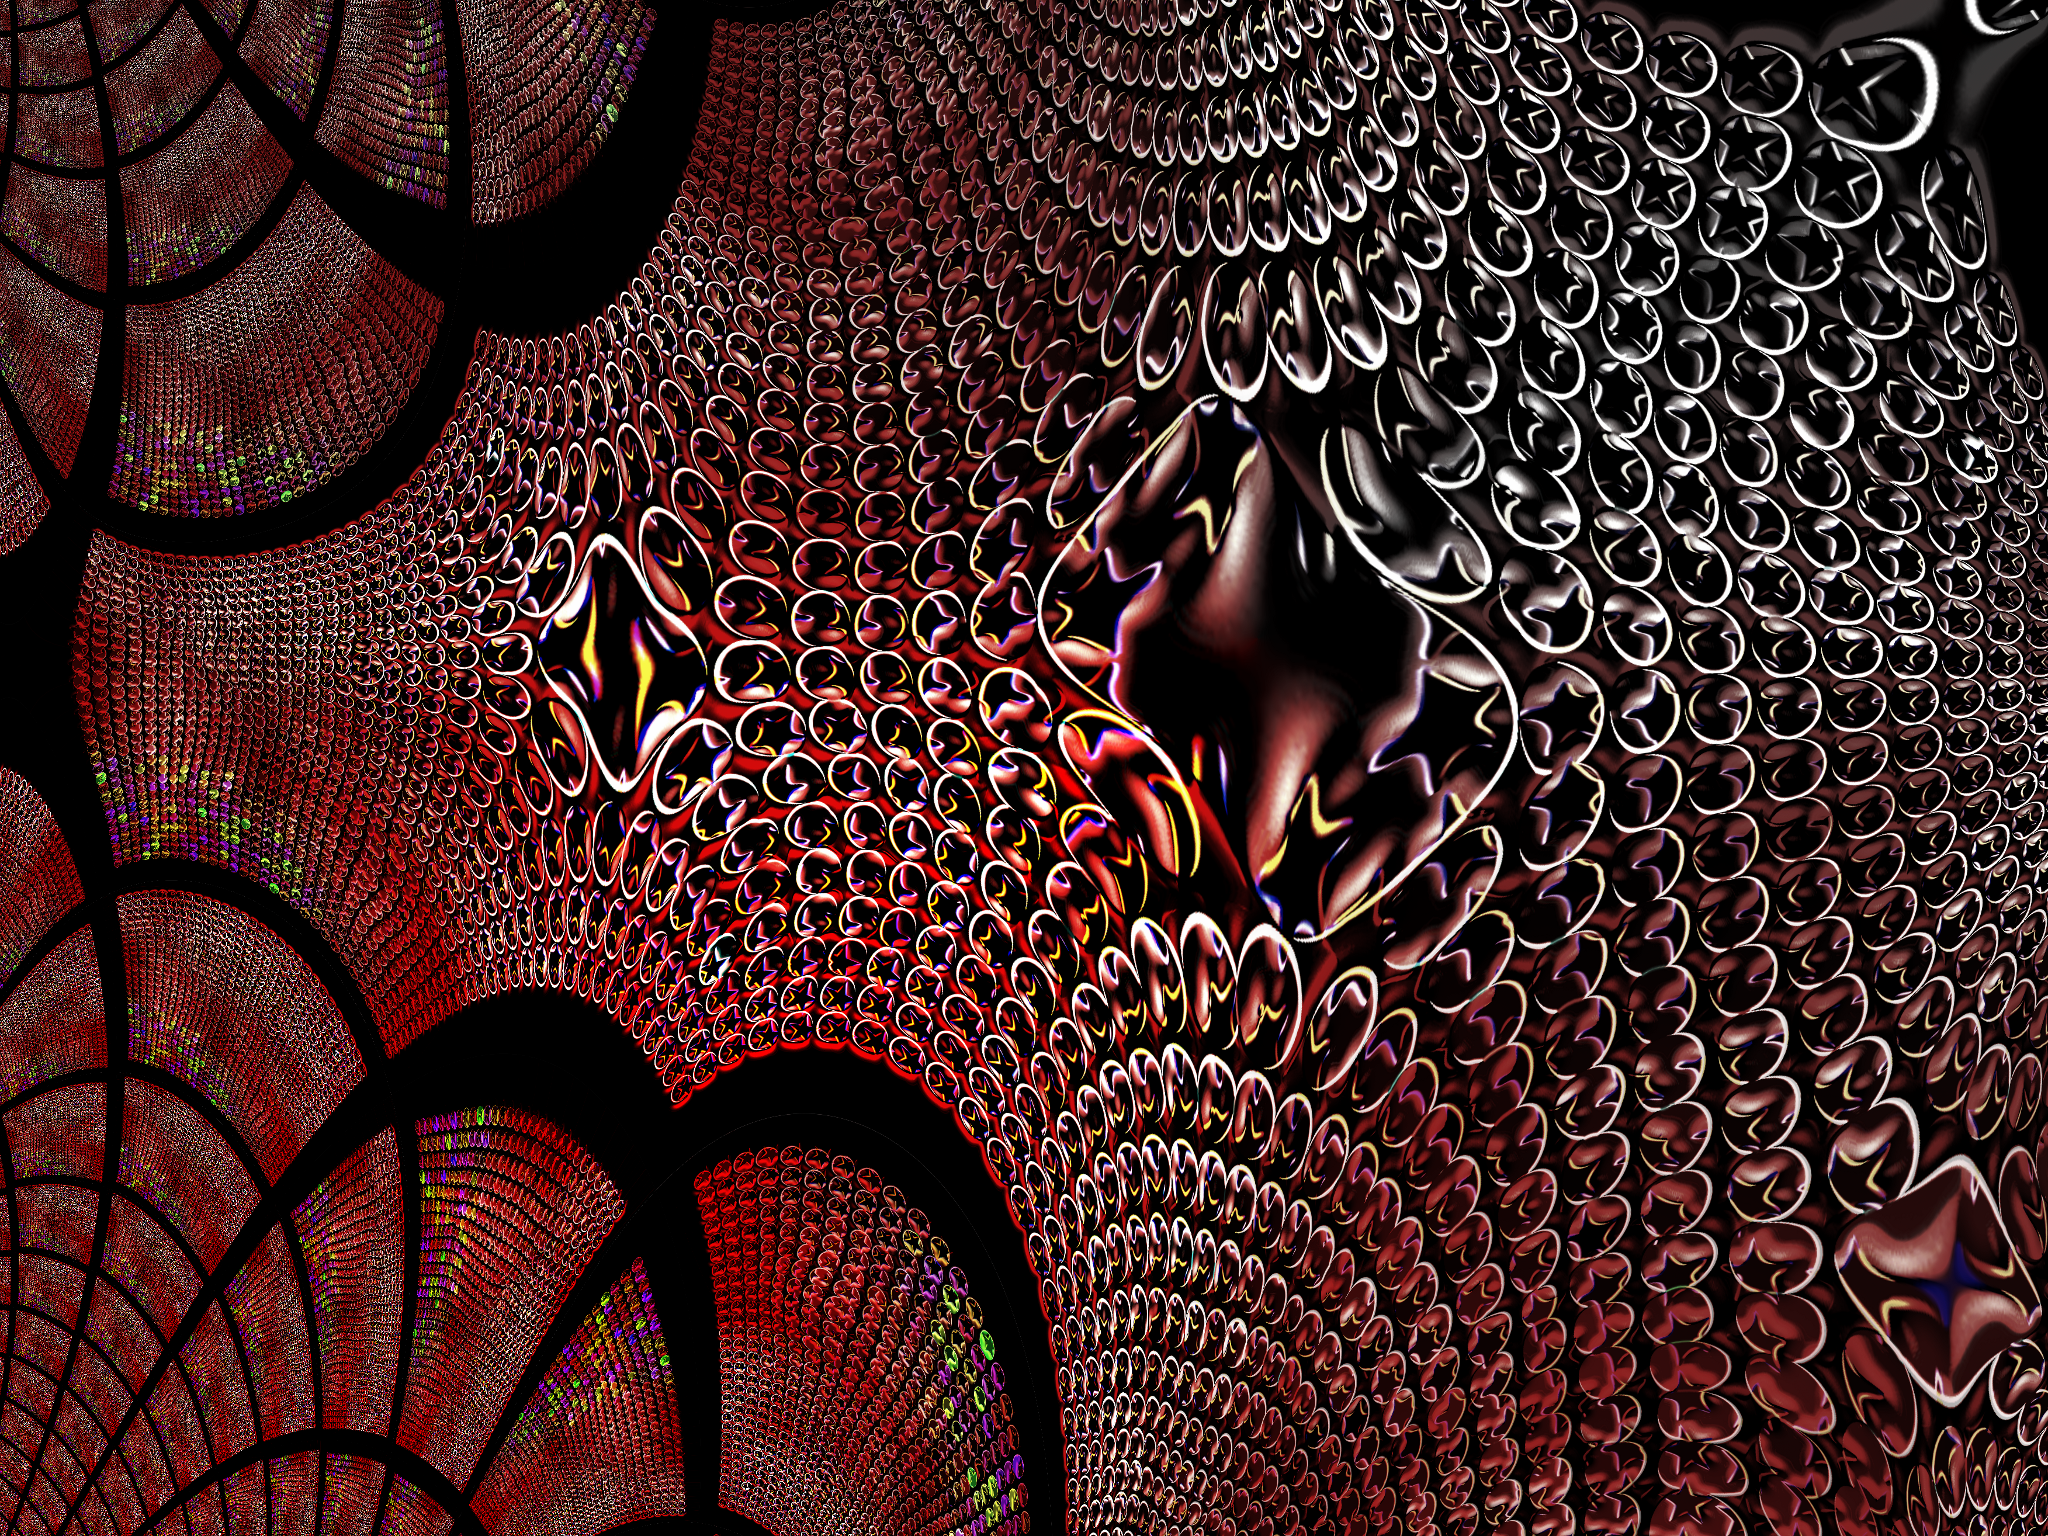 Experiment 1 - Fractal by PomPrint